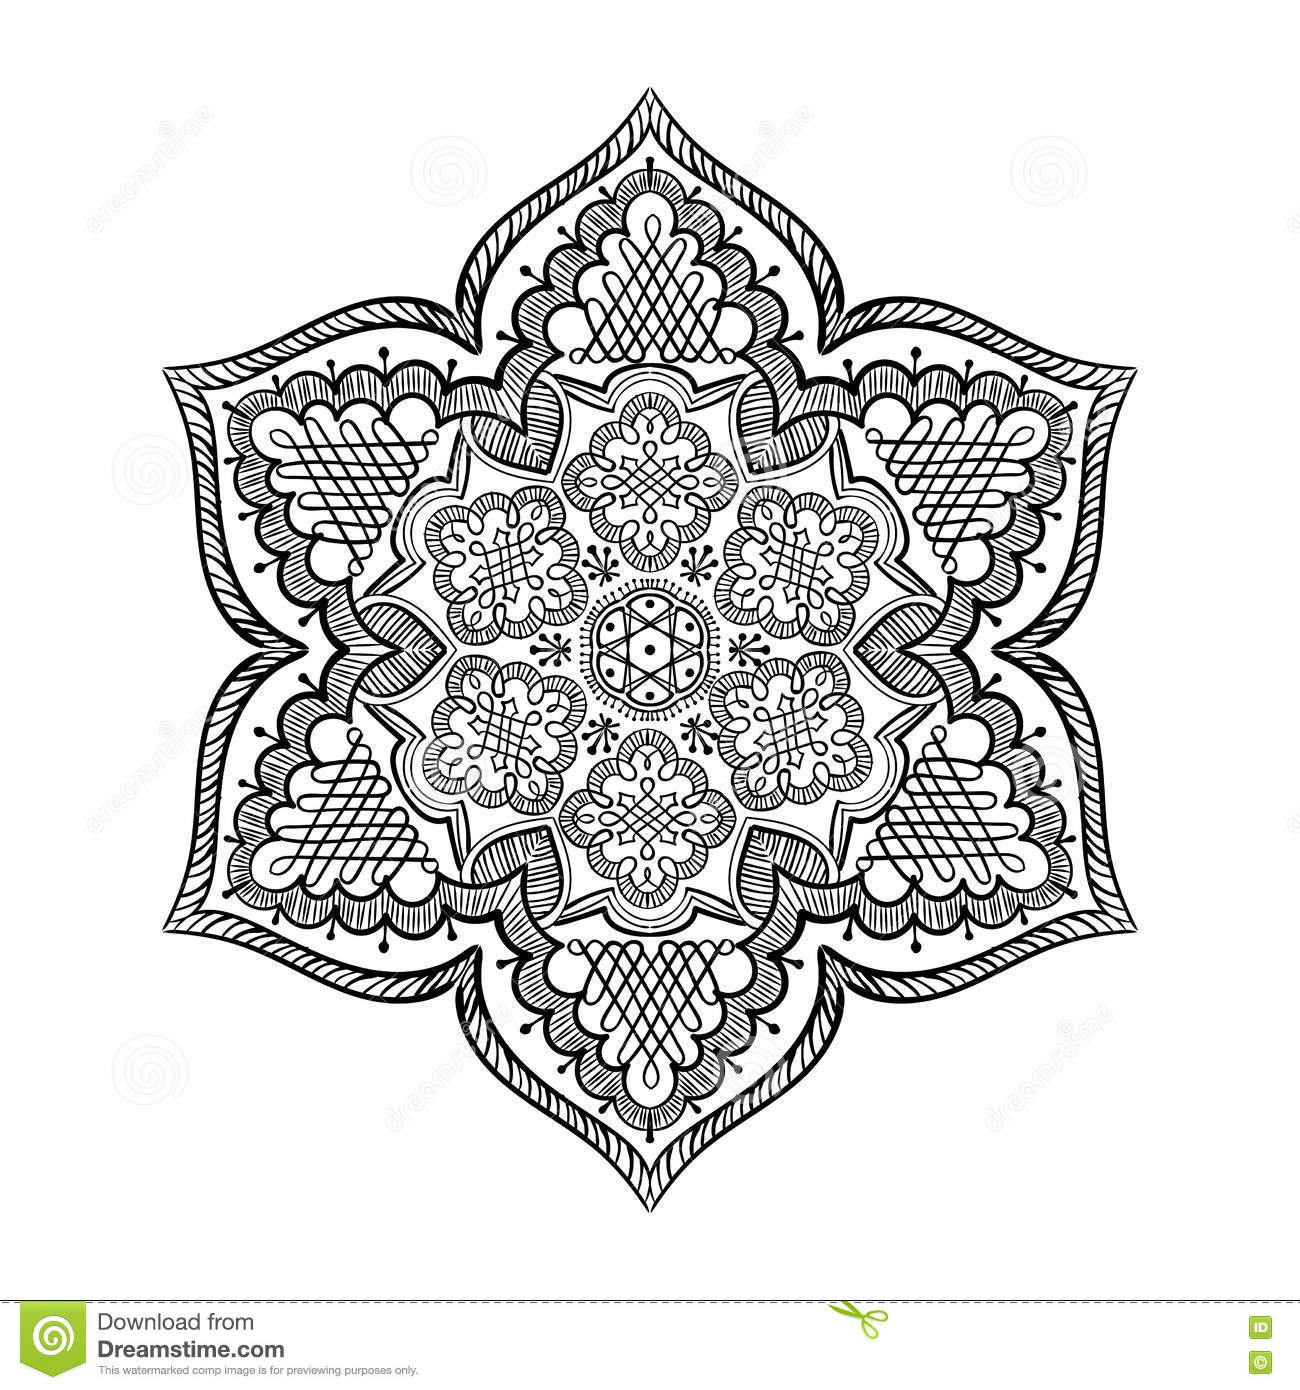 Mandala Kolam Rangoli Stock Vector Illustration Of Design